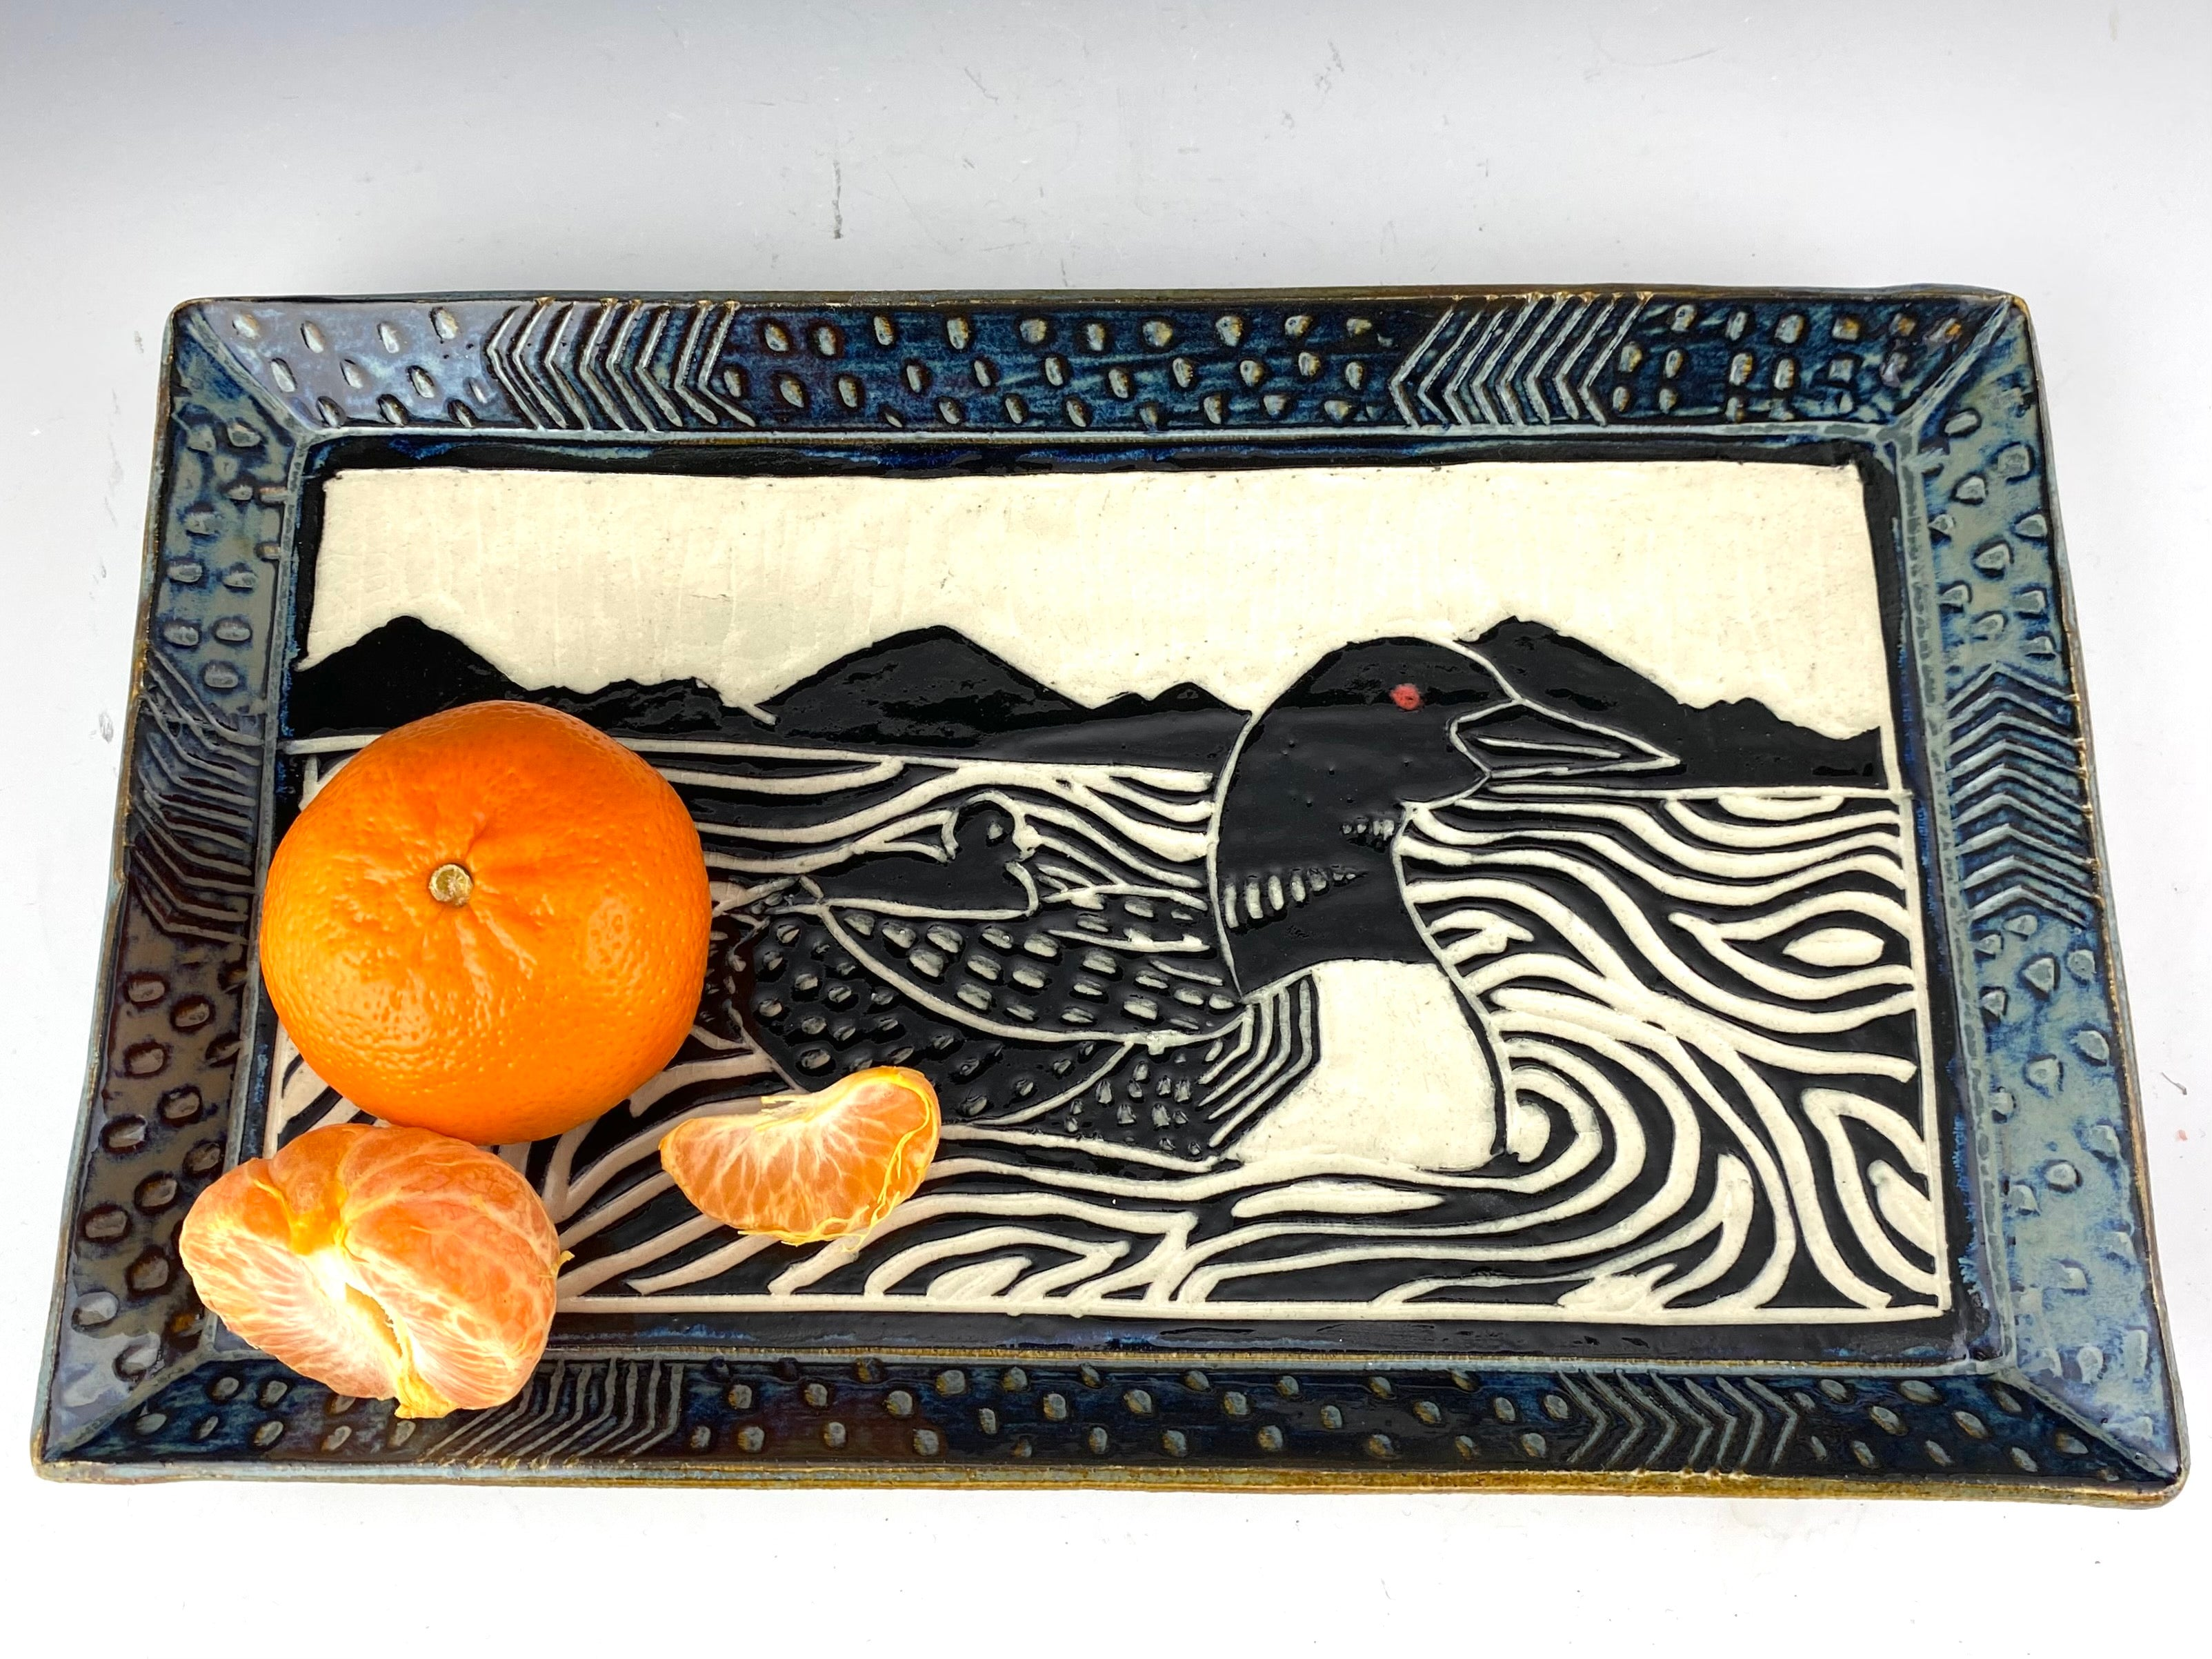 Loon Sgraffito Pottery rectangular tray in gray